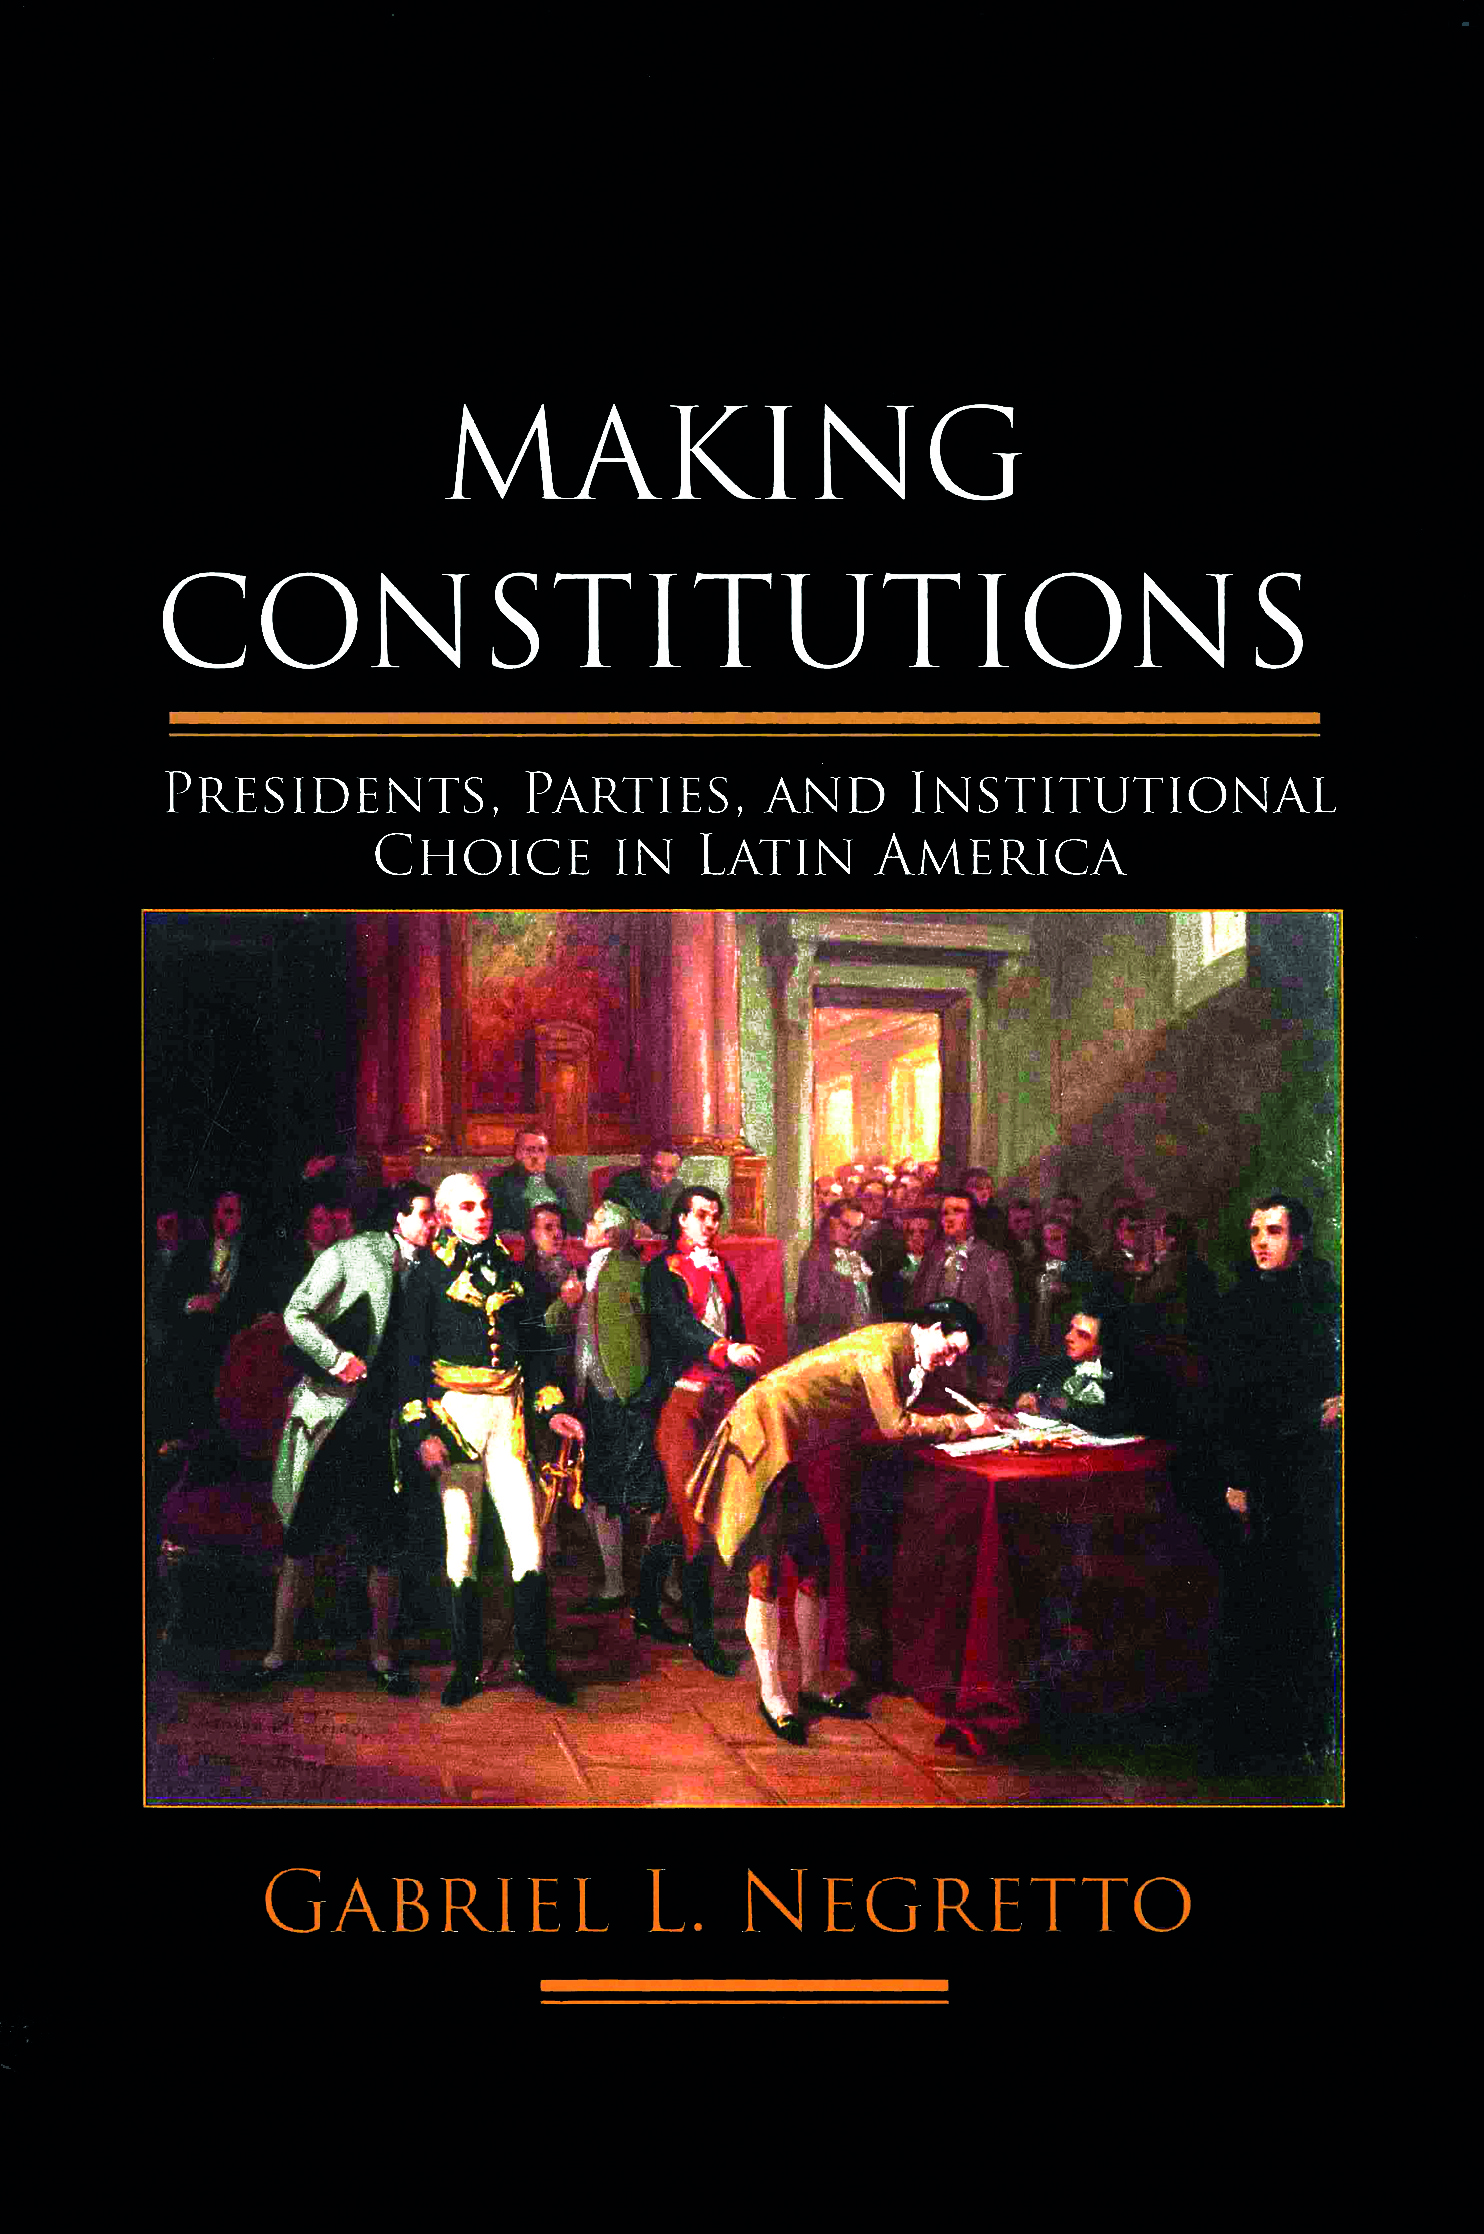 Making Constitutions, Presidents, Parties, and Institucional Choice in Latin America, Gabriel L. Negretto.